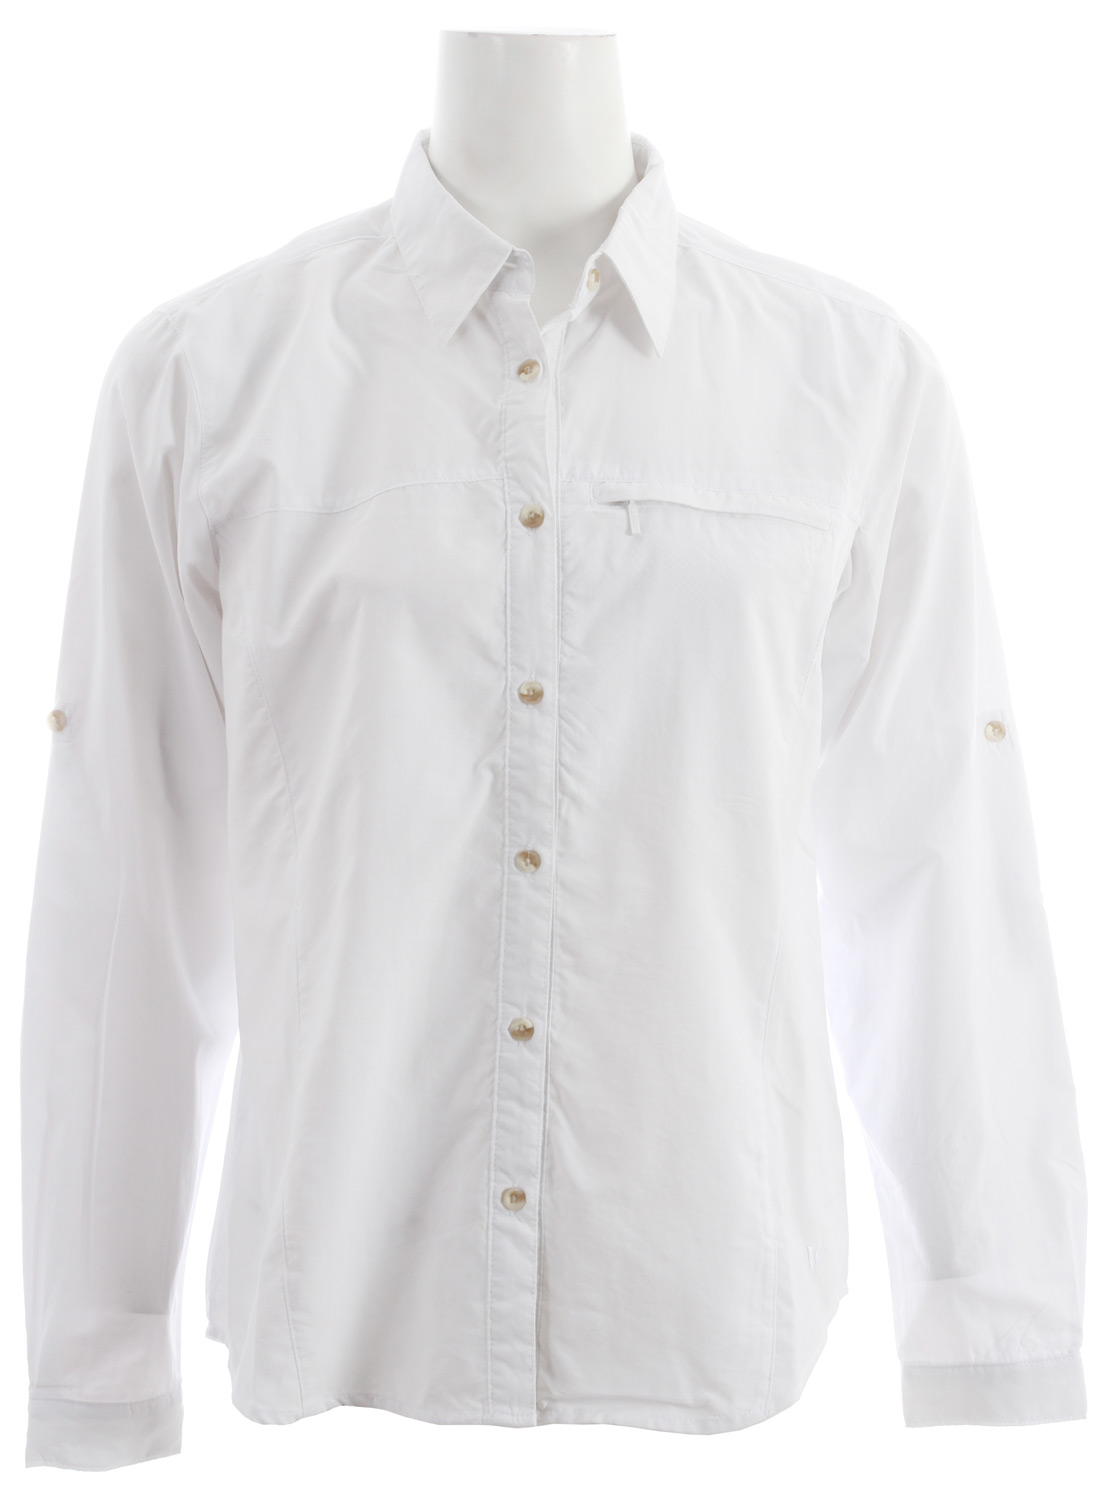 "Entertainment Traveling abroad (or into your own backyard  on sunny summer days calls for the White Sierra Swamp L/S Shirt for women. Complete with roll-up sleeves, a zip-secure chest pocket and wicking properties, this women's technical long sleeve button-down has got you covered. Not to mention, with built-in UPF 30 and Insect Shield bug repellent, this lightweight wonder helps keep you out of the sun and away from bugs, so you can spend all summer outside.Key Features of the White Sierra Swamp L/S Shirt:  TRAVEL CLOTH  100% sanded nylon woven  UPF 30  Wicking  Insect Shield - bug repellent  Roll up sleeve  Zip secure chest pocket  Back venting  Fabric weight: 3oz  Center back length: 25"" - $41.95"